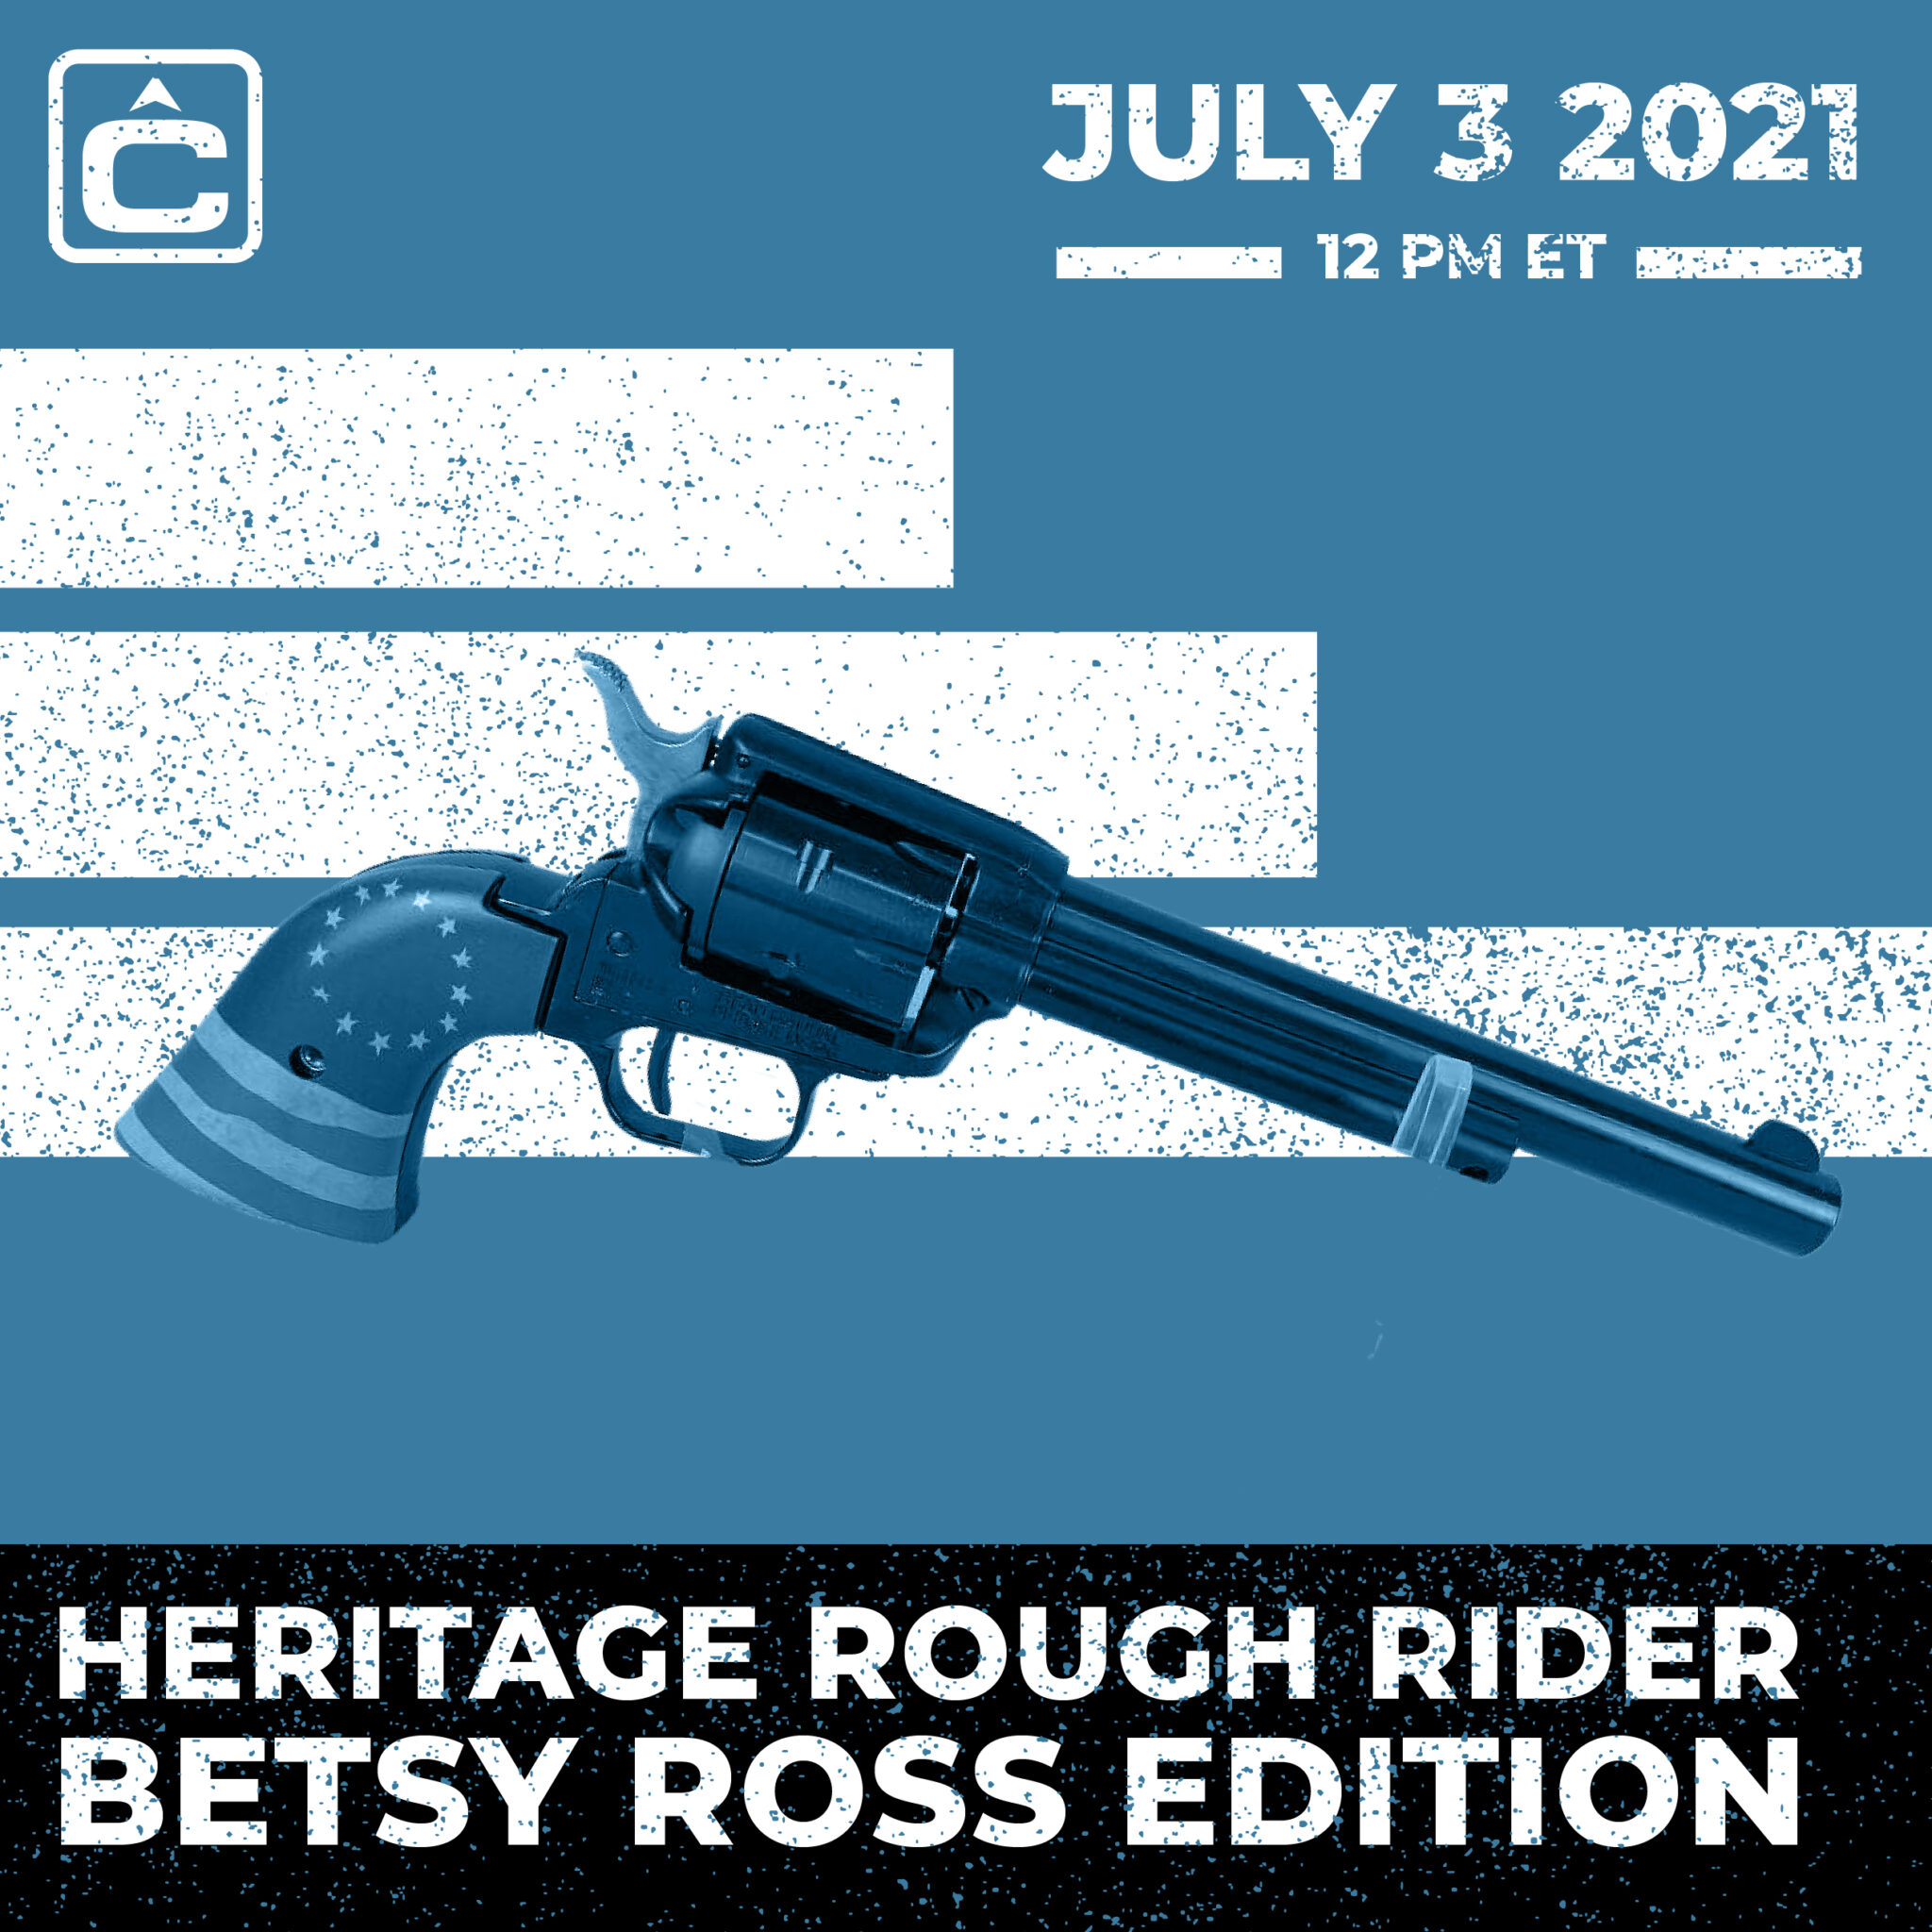 HERITAGE ROUGH RIDER - BETSY ROSS EDITION